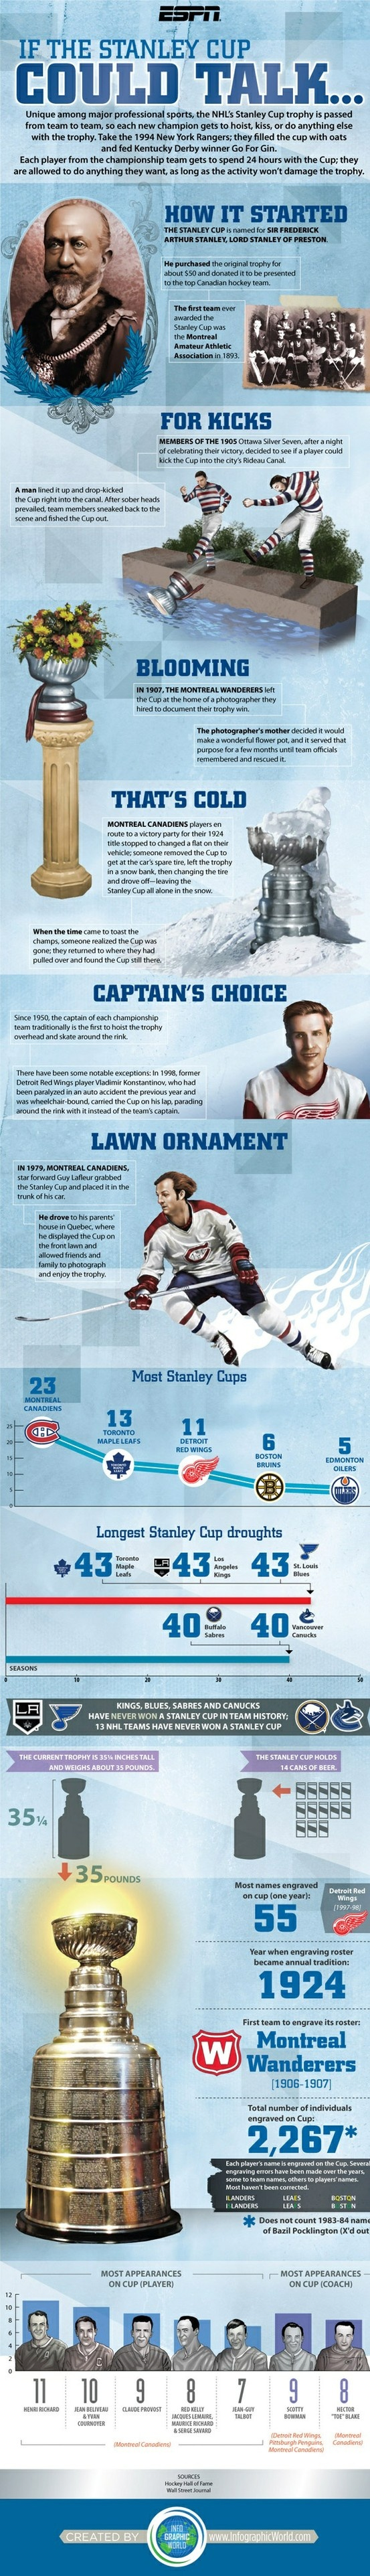 Not up to date, but it still has true facts about the Stanley Cup